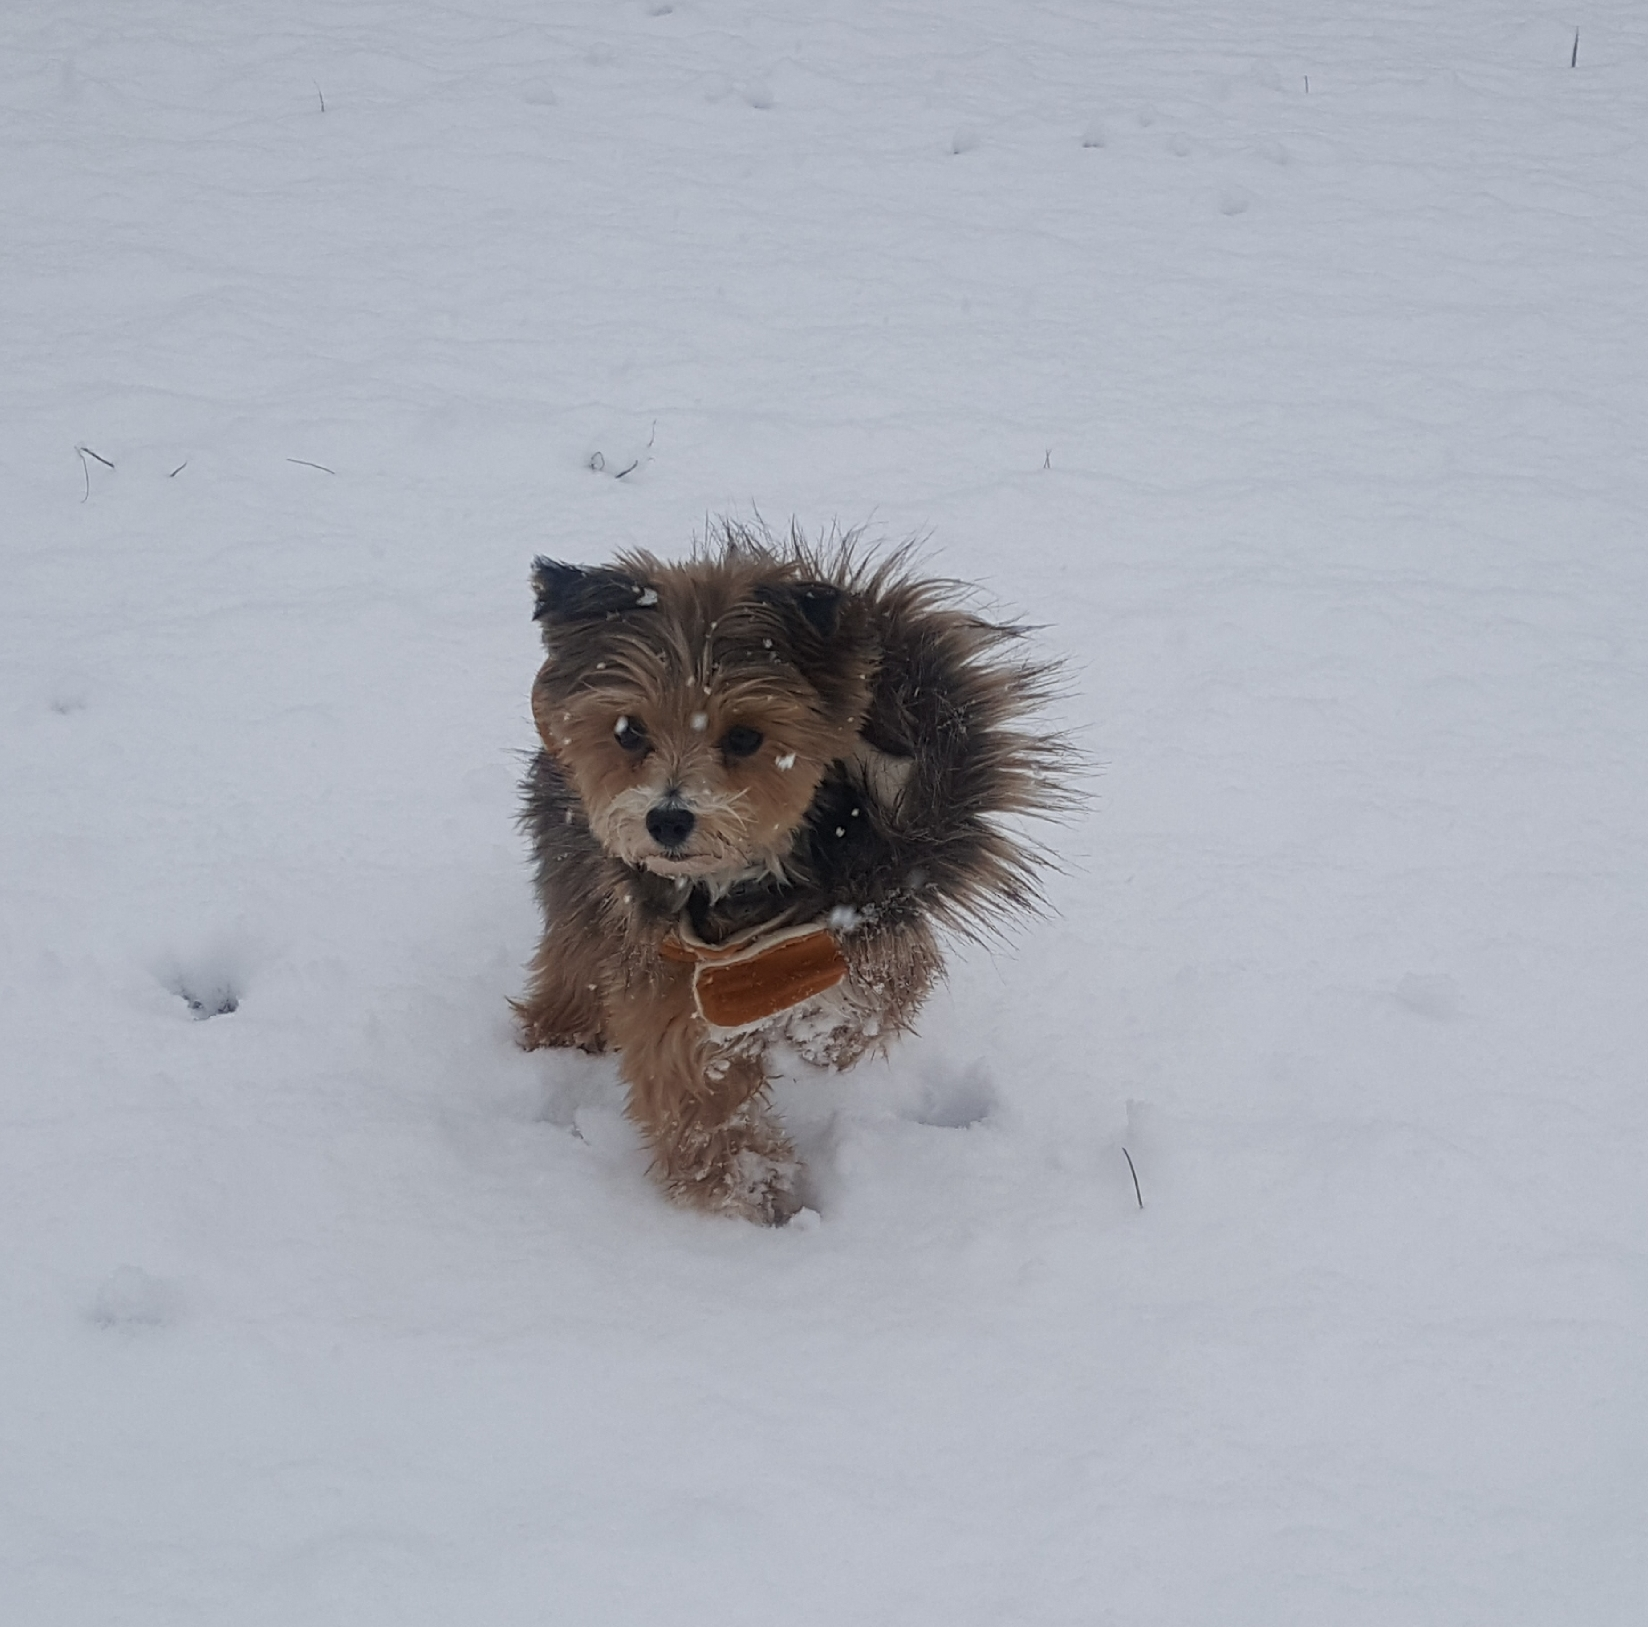 "<div class=""meta image-caption""><div class=""origin-logo origin-image wtvd""><span>WTVD</span></div><span class=""caption-text"">Yorkipoo Zoey playing in the snow in northern Granville County, Salem Township. (ABC11 Eyewitness)</span></div>"